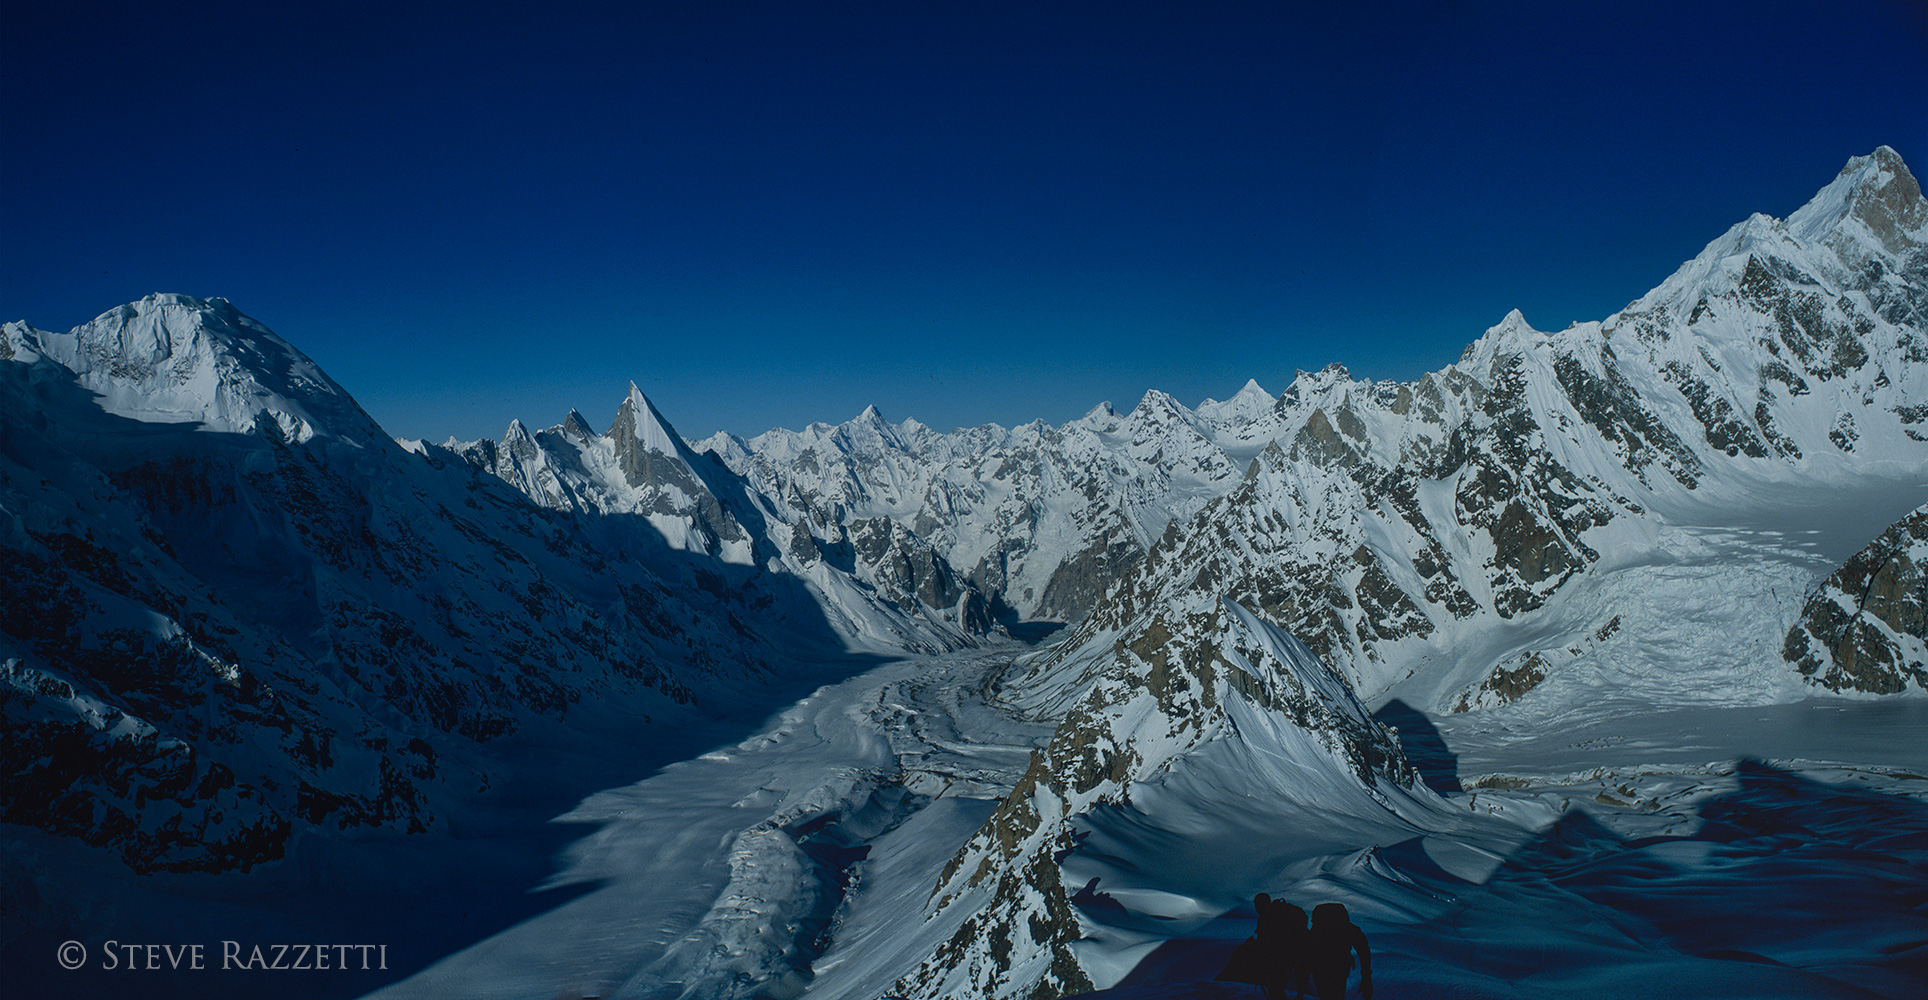 A panorama view down-valley from the summit of Gondogoro Peak (5650m), with Masherbrum on the far right, Trinity Peak on the far left, and the graceful spire of Layla Peak towering over the glacier. This is a stitch of two medium format colour slides (645) and the full resolution image is 6000 by 11000 pixels.